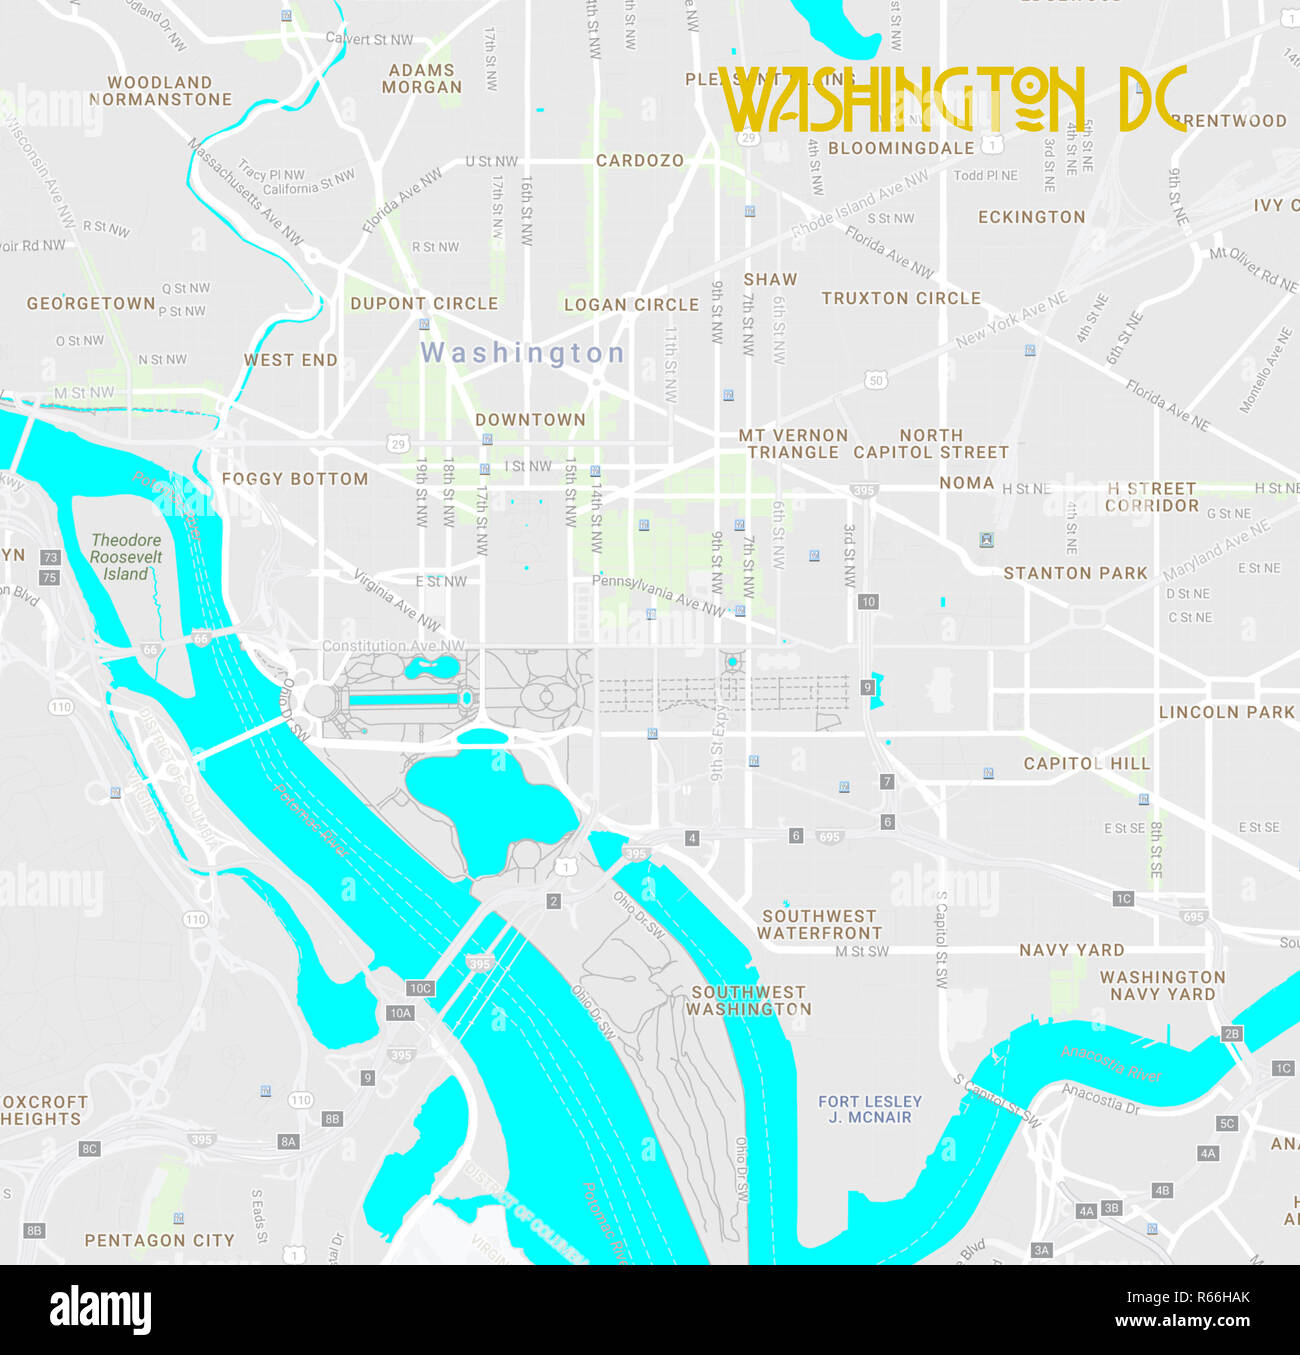 Minimalist Modern Map of Downtown Washington DC, USA 4A.jpg ... on dc state map, dc nightlife map, dc parks map, dc west map, dc georgetown map, dc suburb map, dc city map, dc historic map, dc gentrification map, dc truck route map, dc parking map, dc train station map, dc northwest map, dc washington map, dc capitol building map, dc museums map, dc transit map, dc toronto map, dc county map, dc mall map,